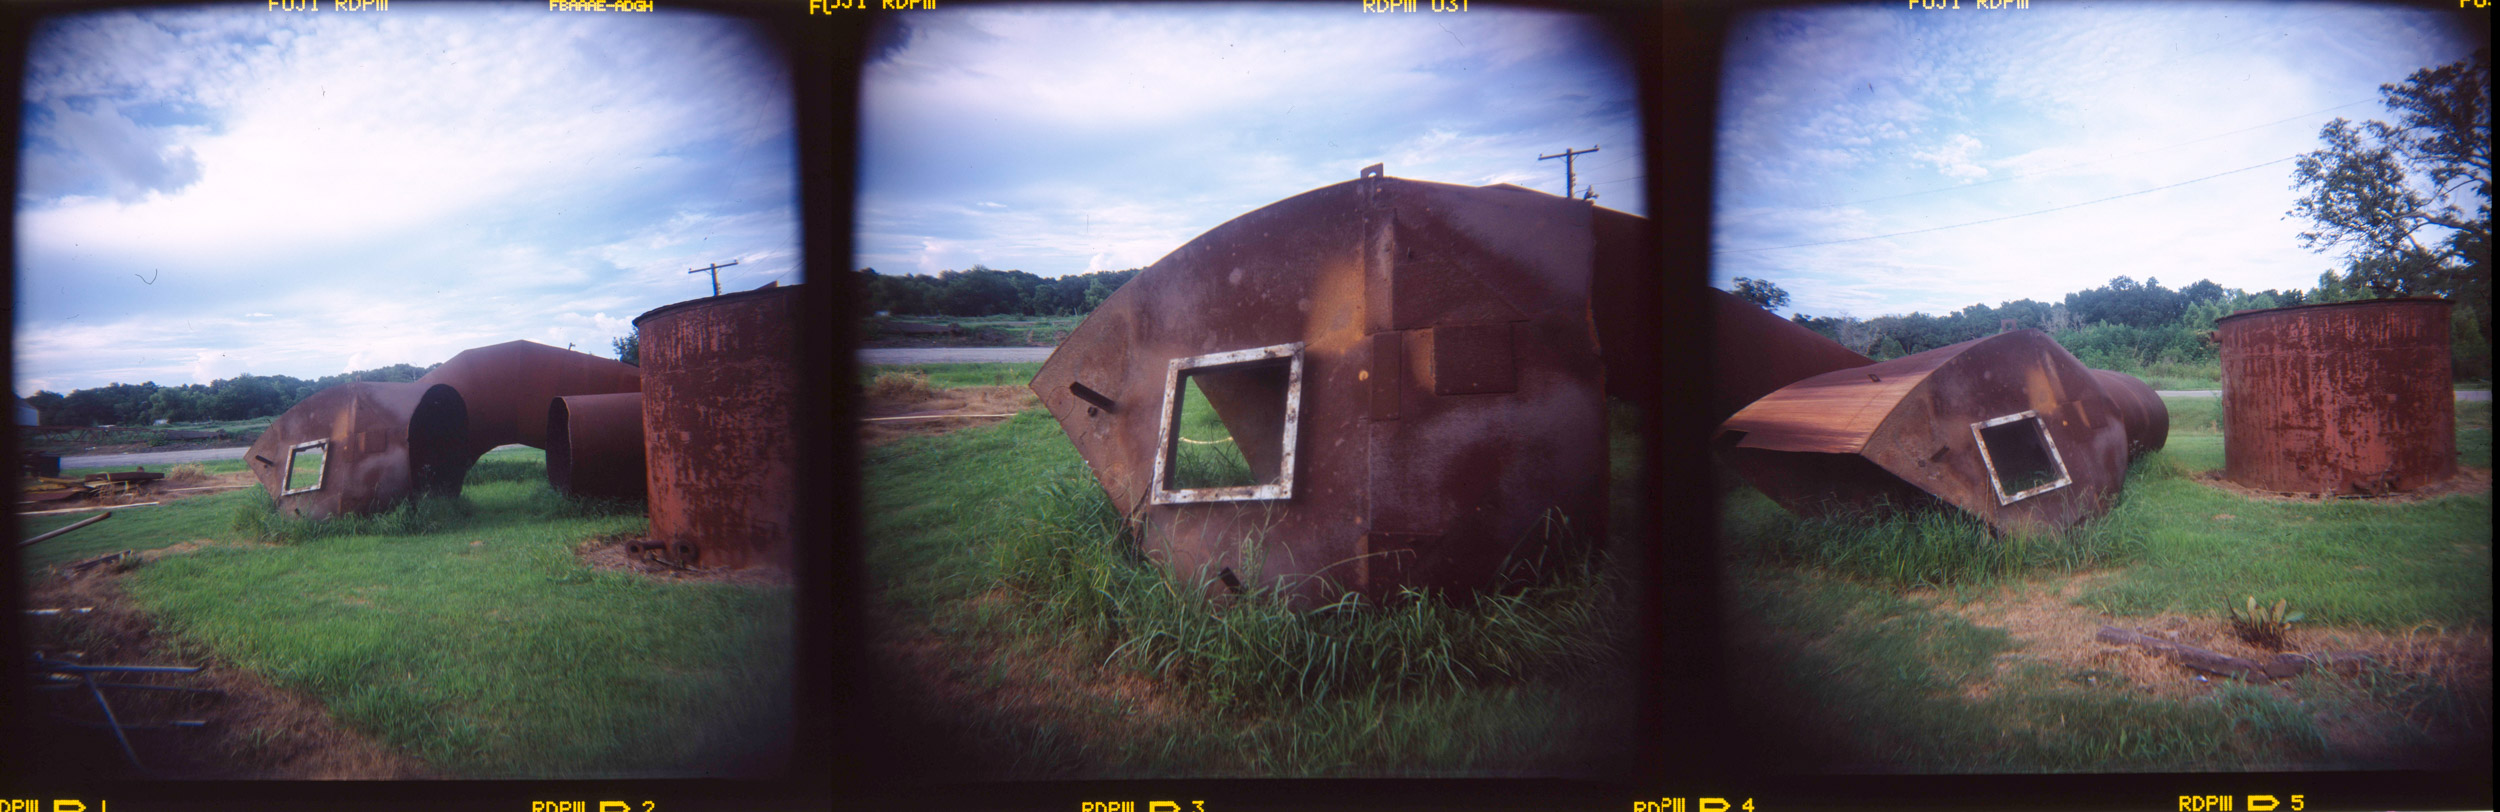 Maybe Louisiana Holga